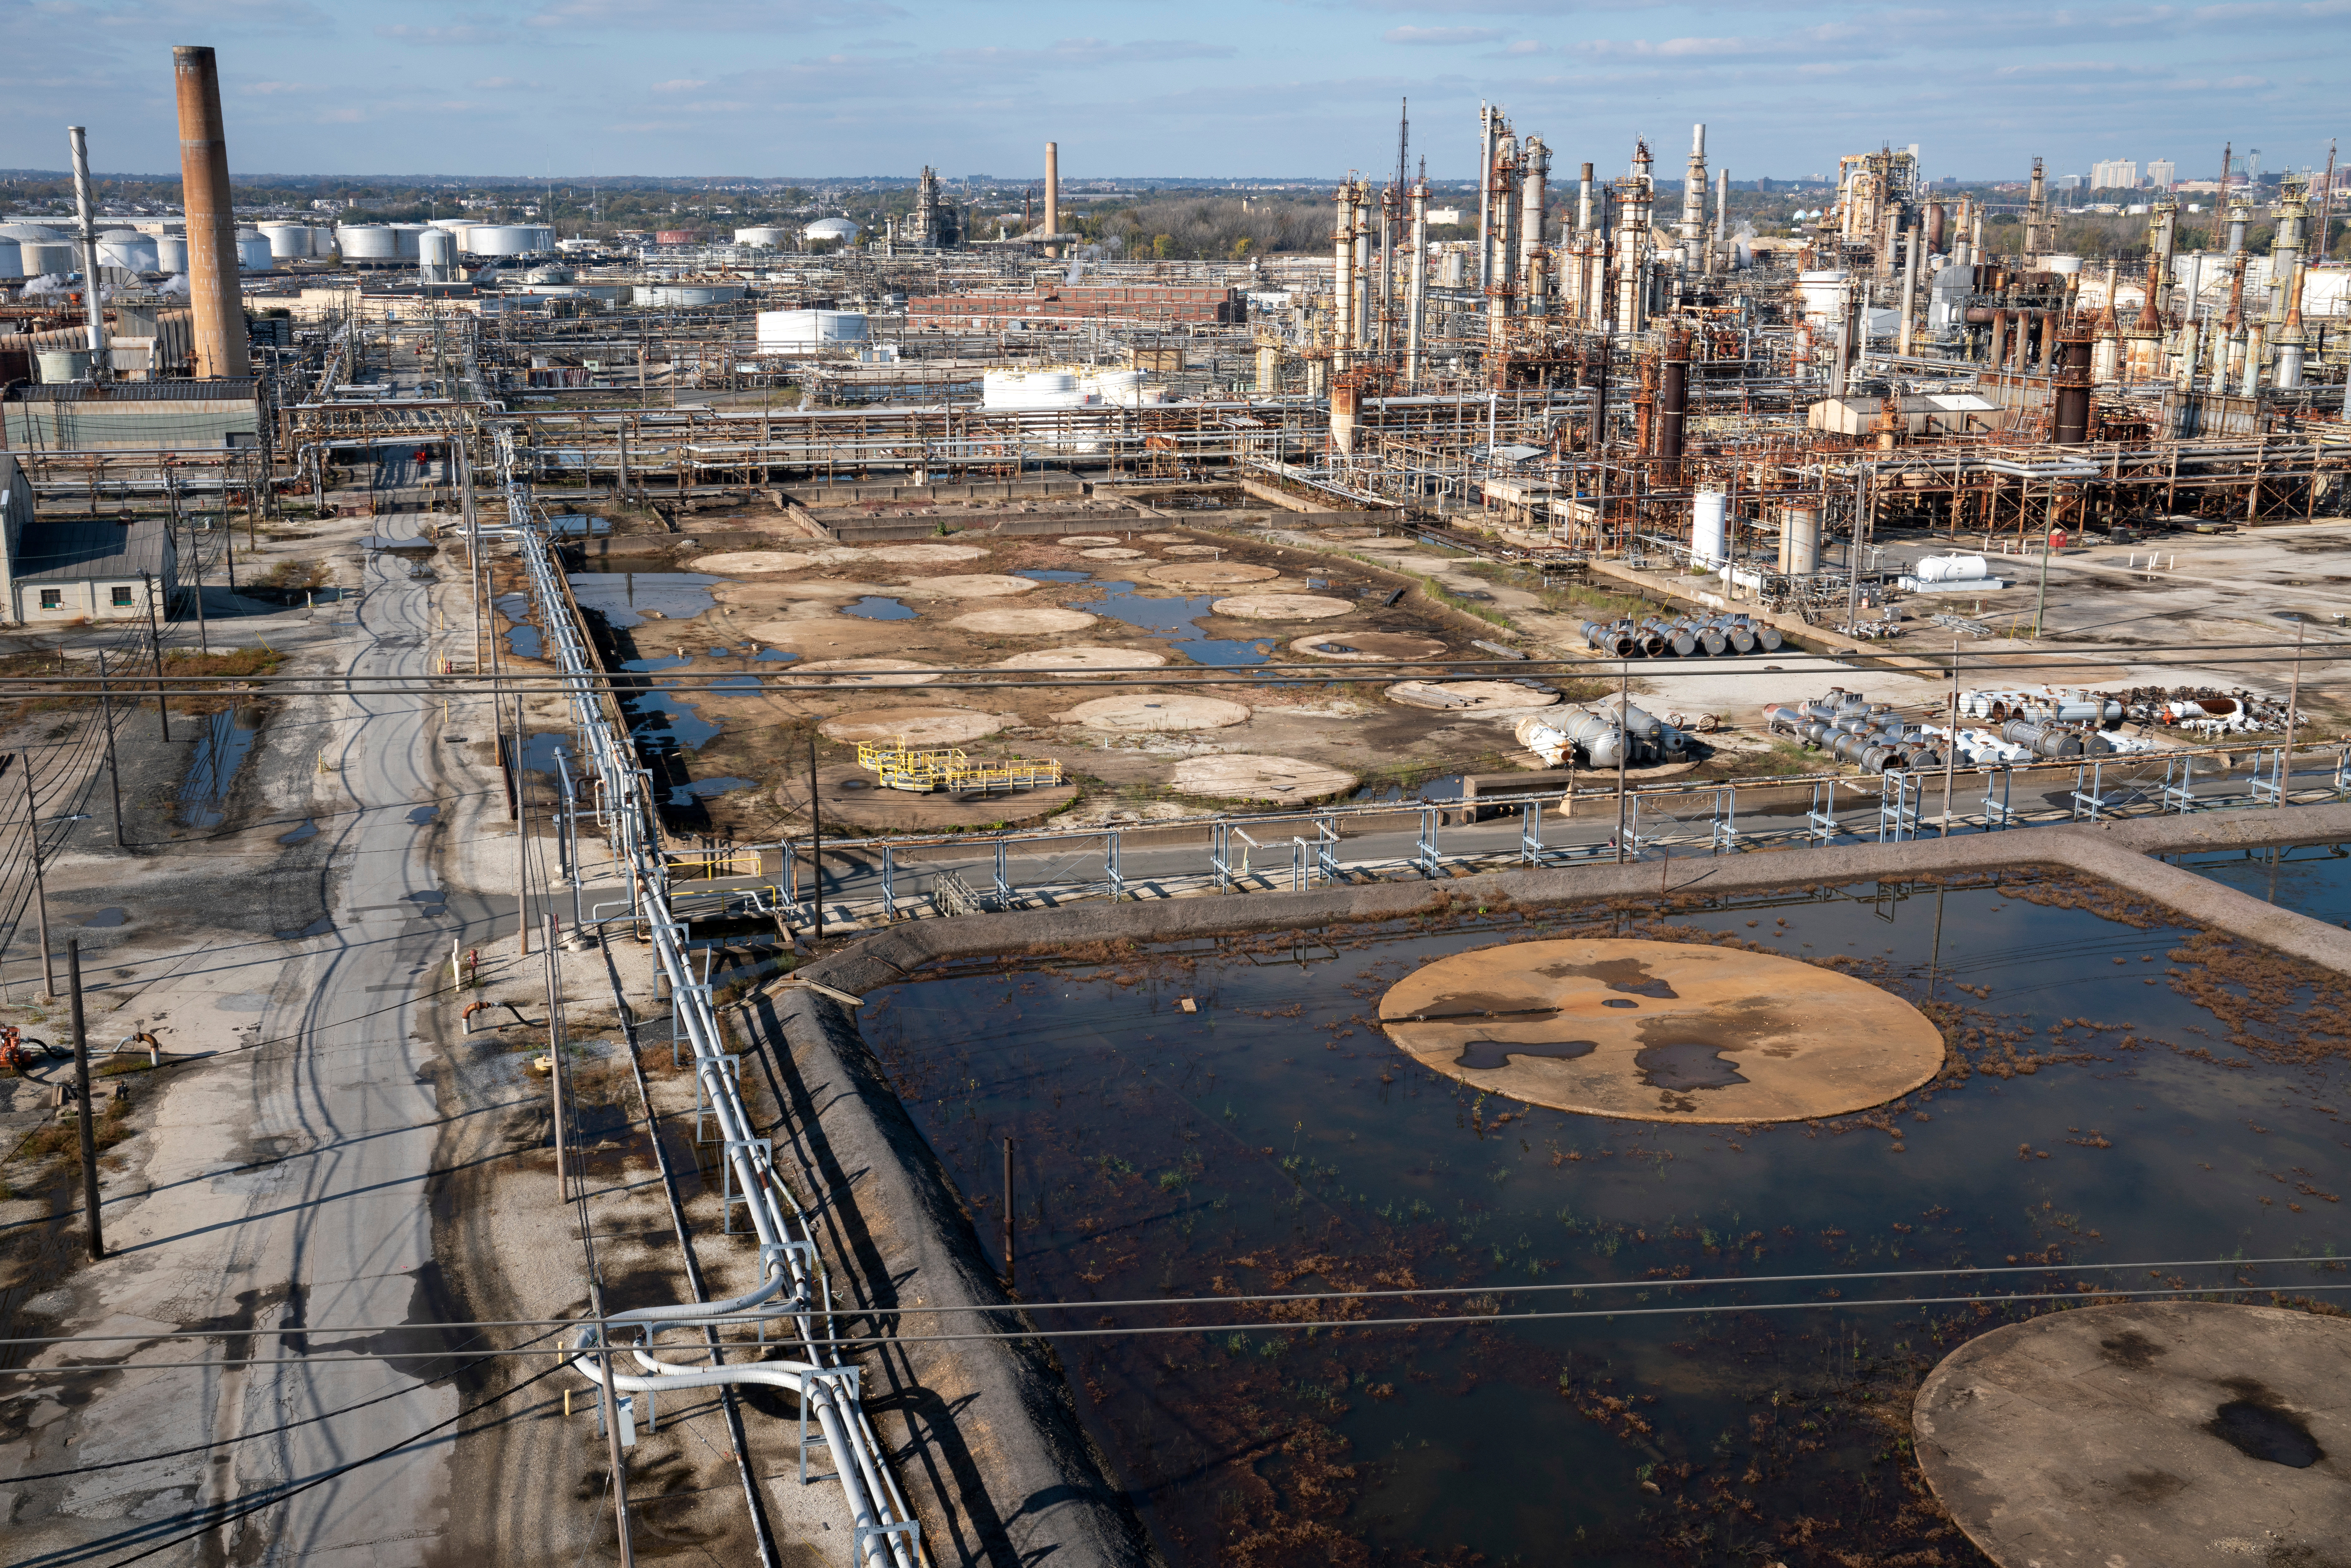 A general view of the PES Refinery in Philadelphia, Pennsylvania, U.S., October 31, 2020. Picture taken October 31, 2020. REUTERS/Dane Rhys